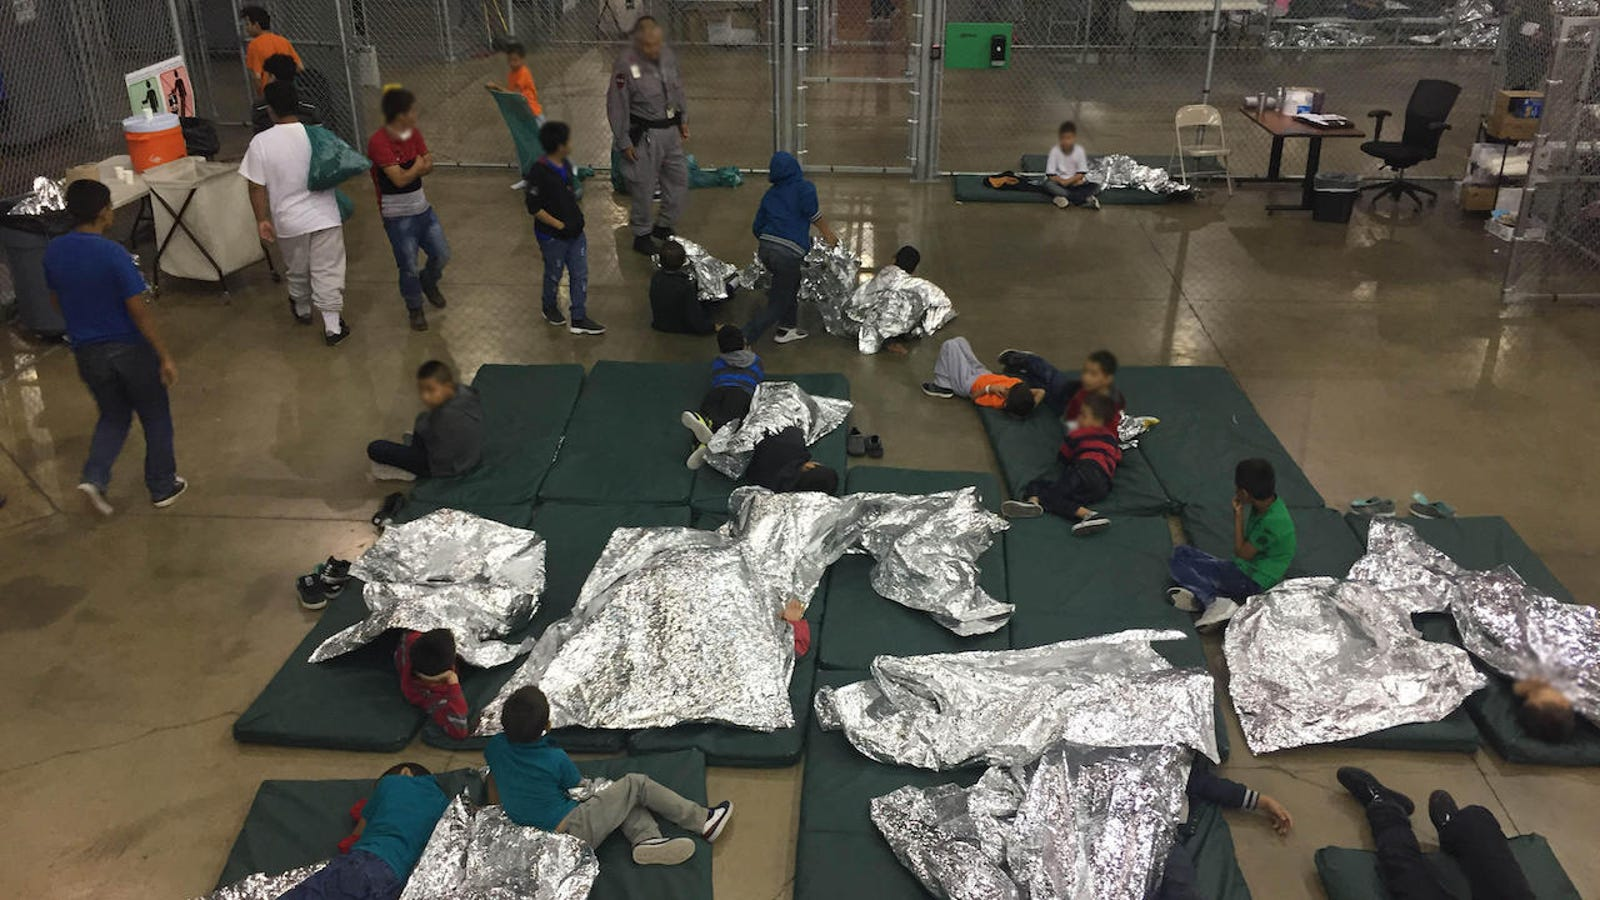 U.S. Government Says It's Not Required to Provide Migrant Kids in Custody With Toothpaste and Soap